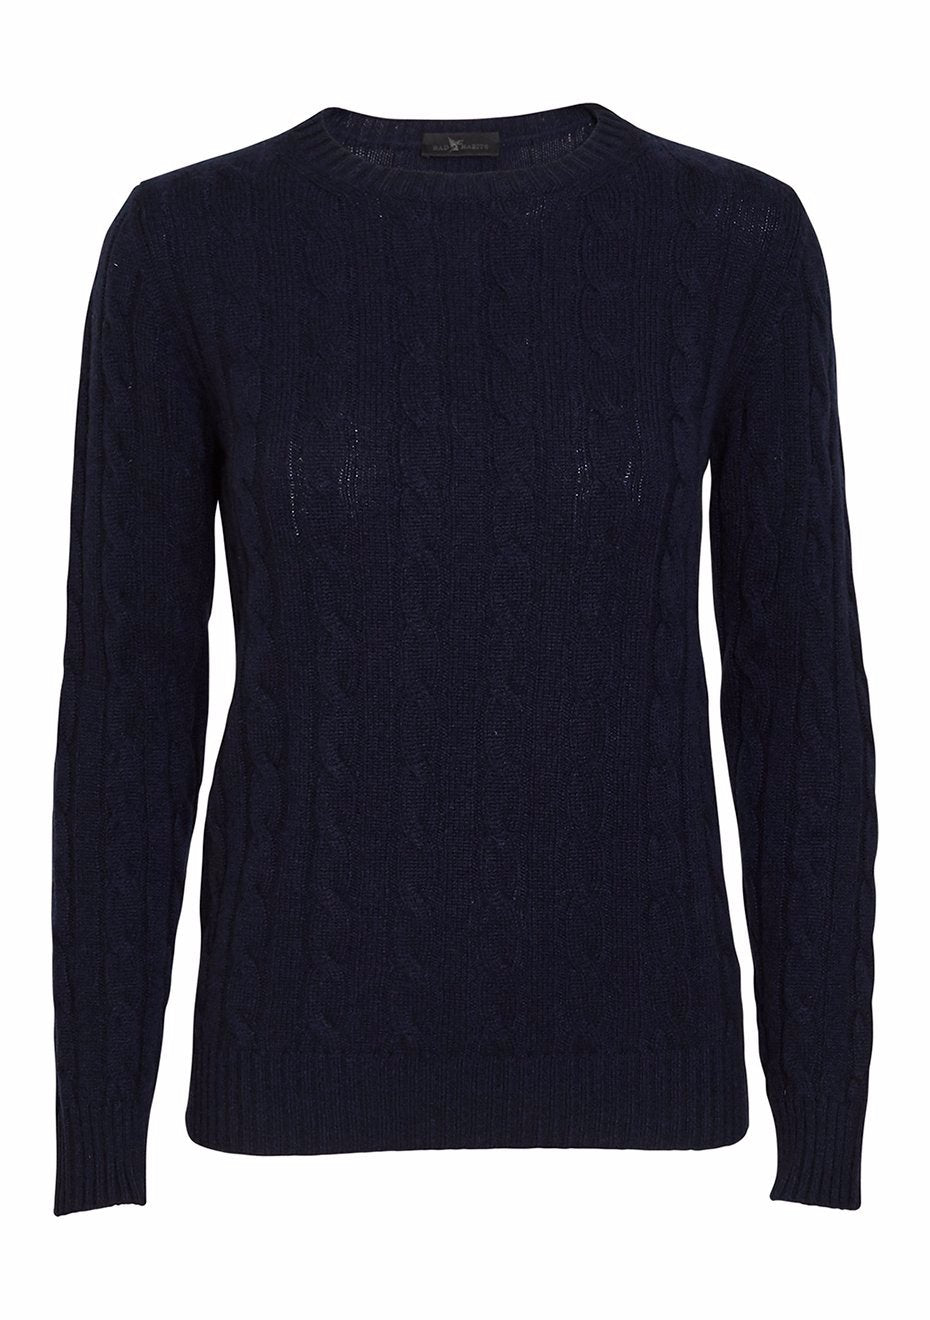 Navy Cashmere Cable Sweater